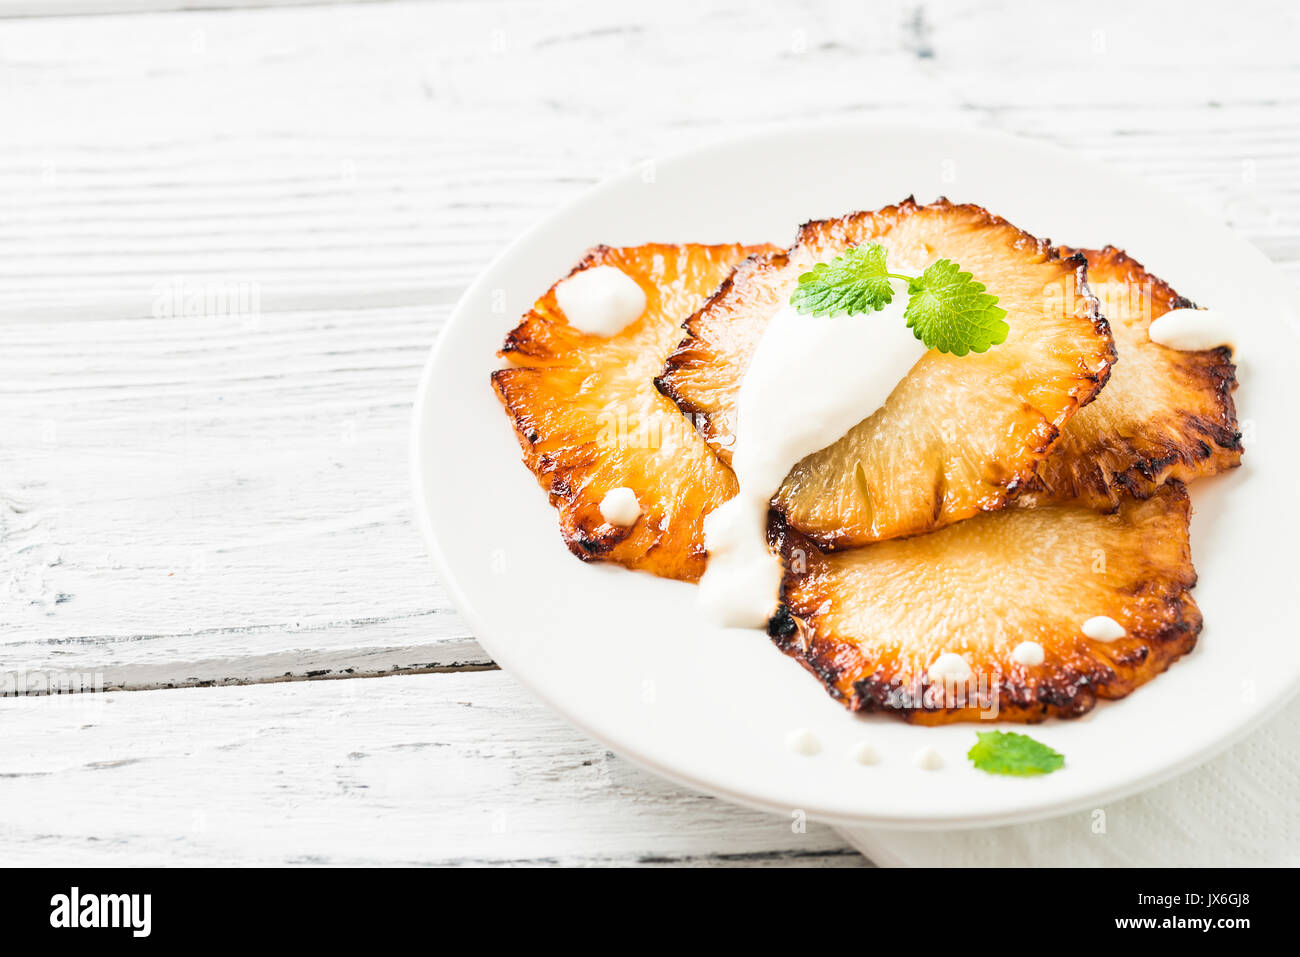 Fried pineapple slices with creme fraiche, mint in white plate on wooden background. Copy space - Stock Image